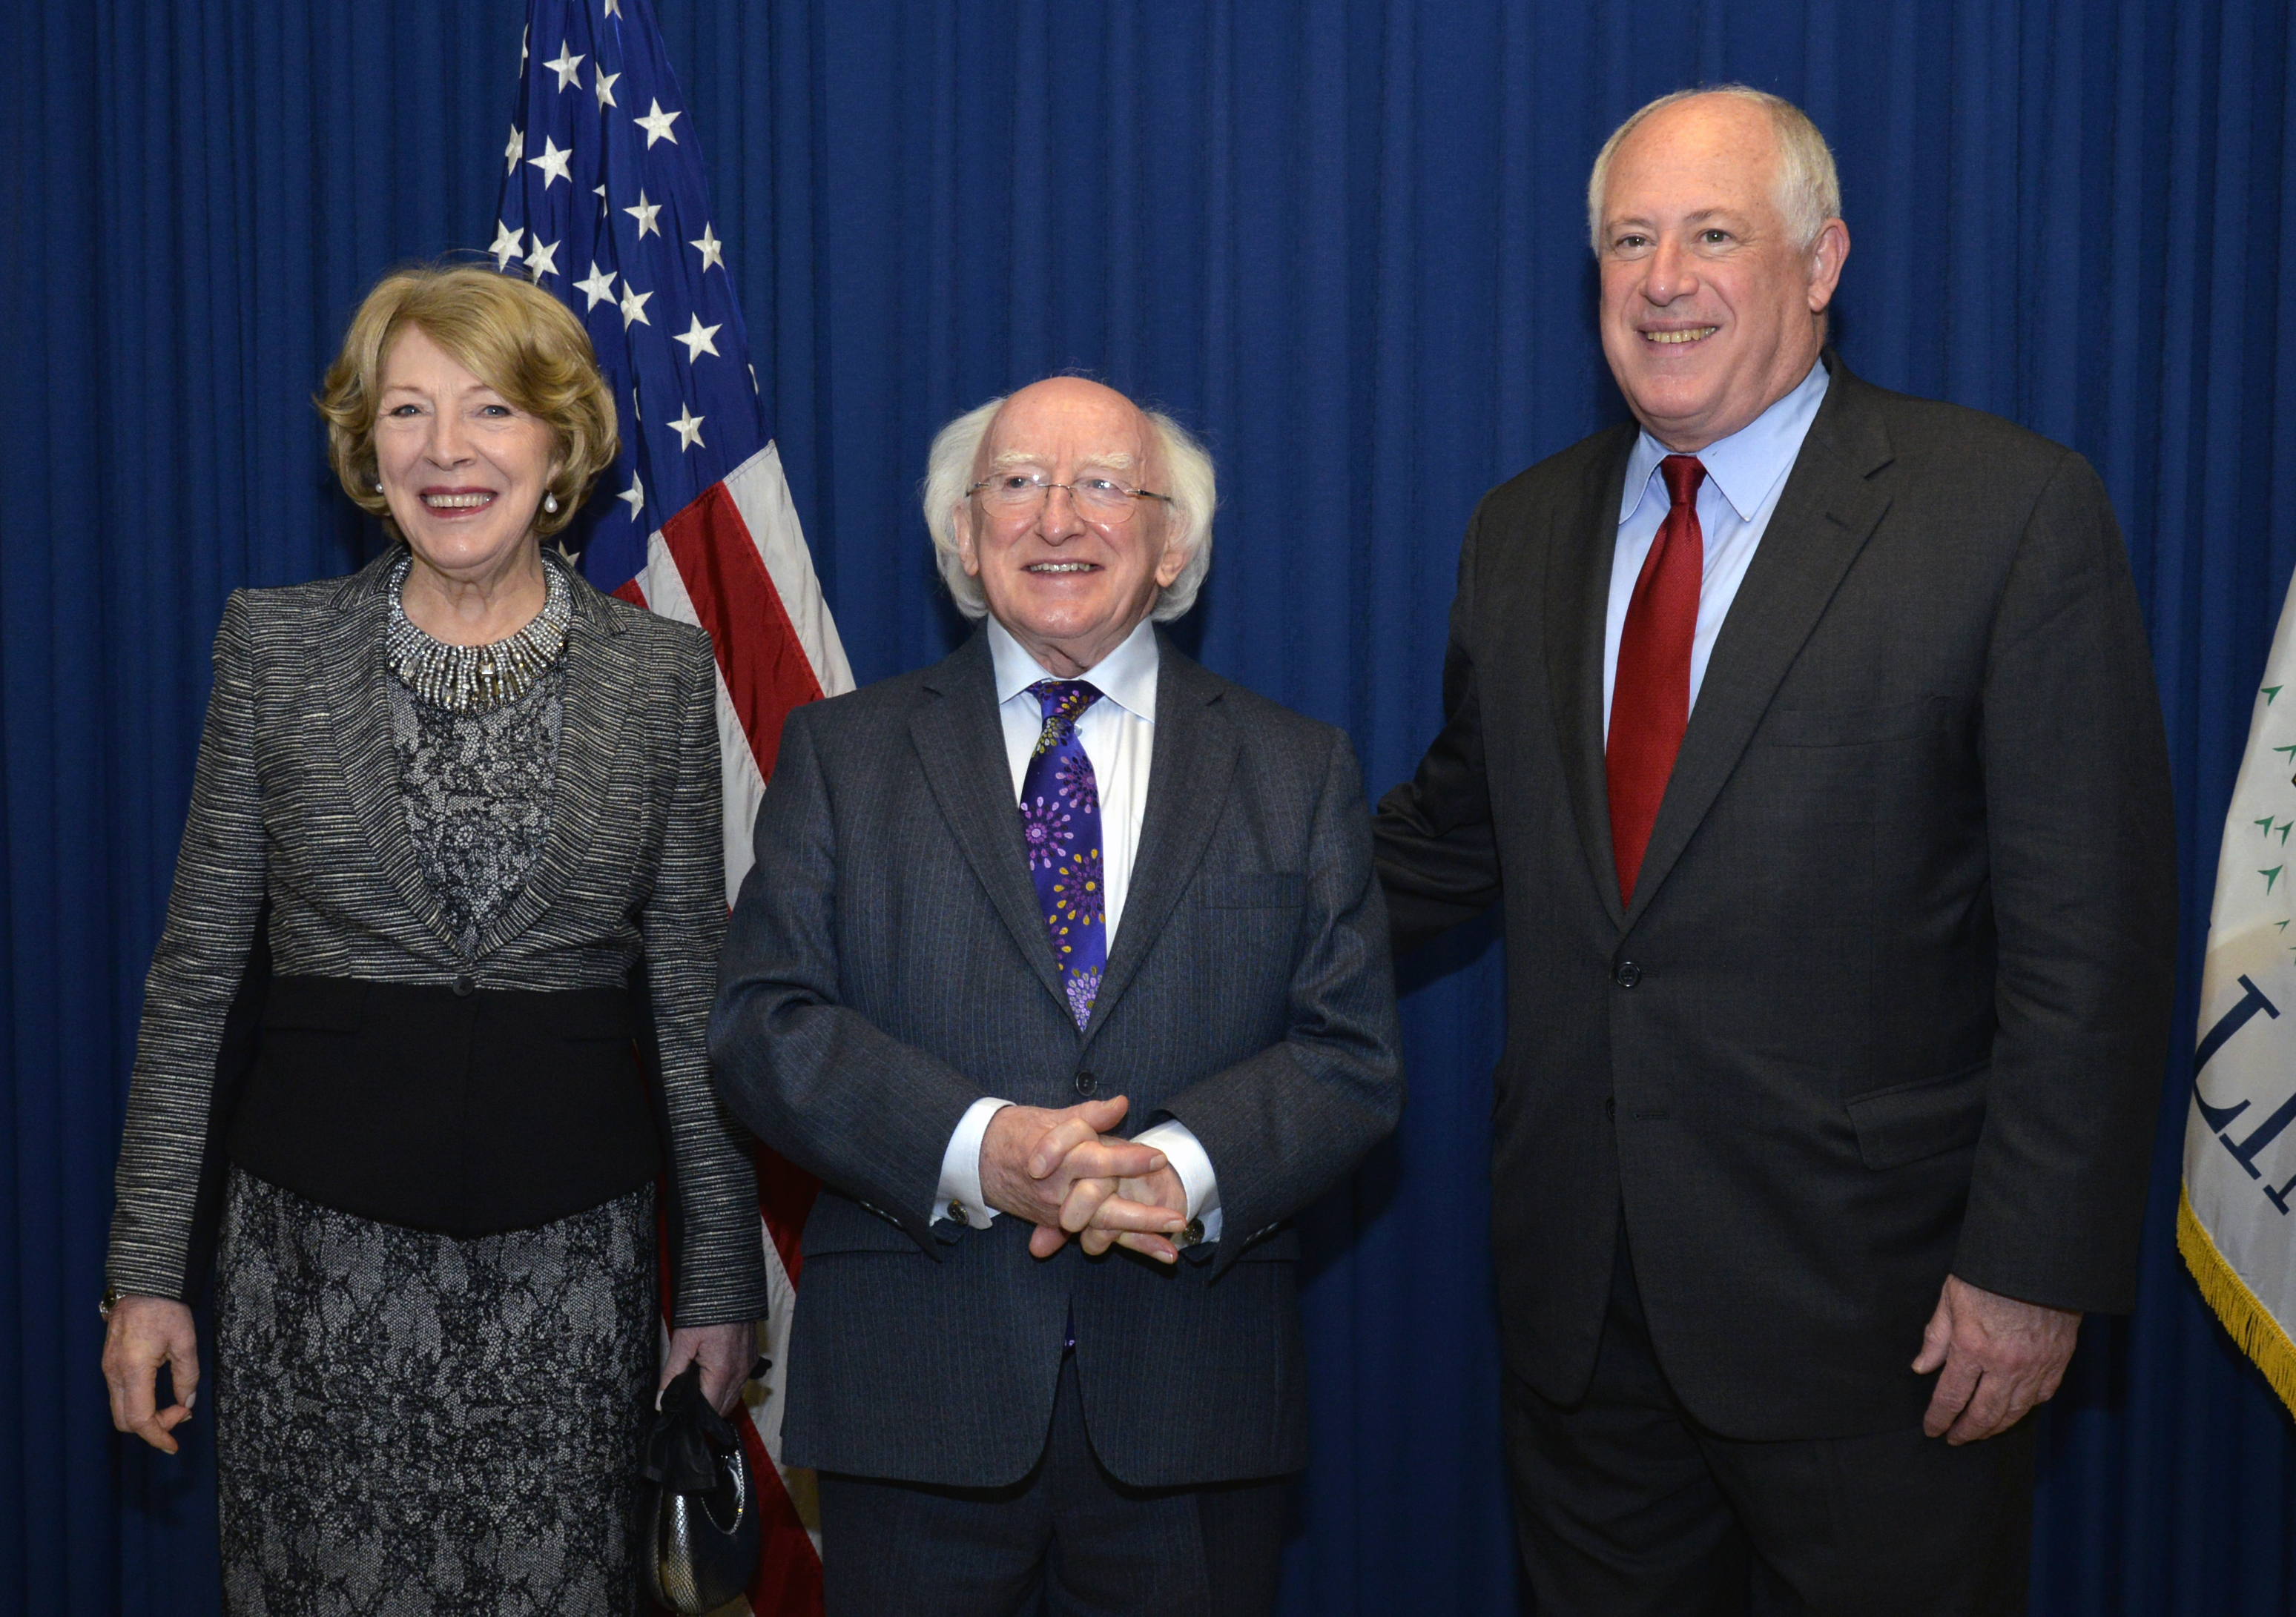 From left to right: First Lady of Ireland Mrs. Sabina Higgins; President of Ireland Michael Higgins; Governor Pat Quinn.